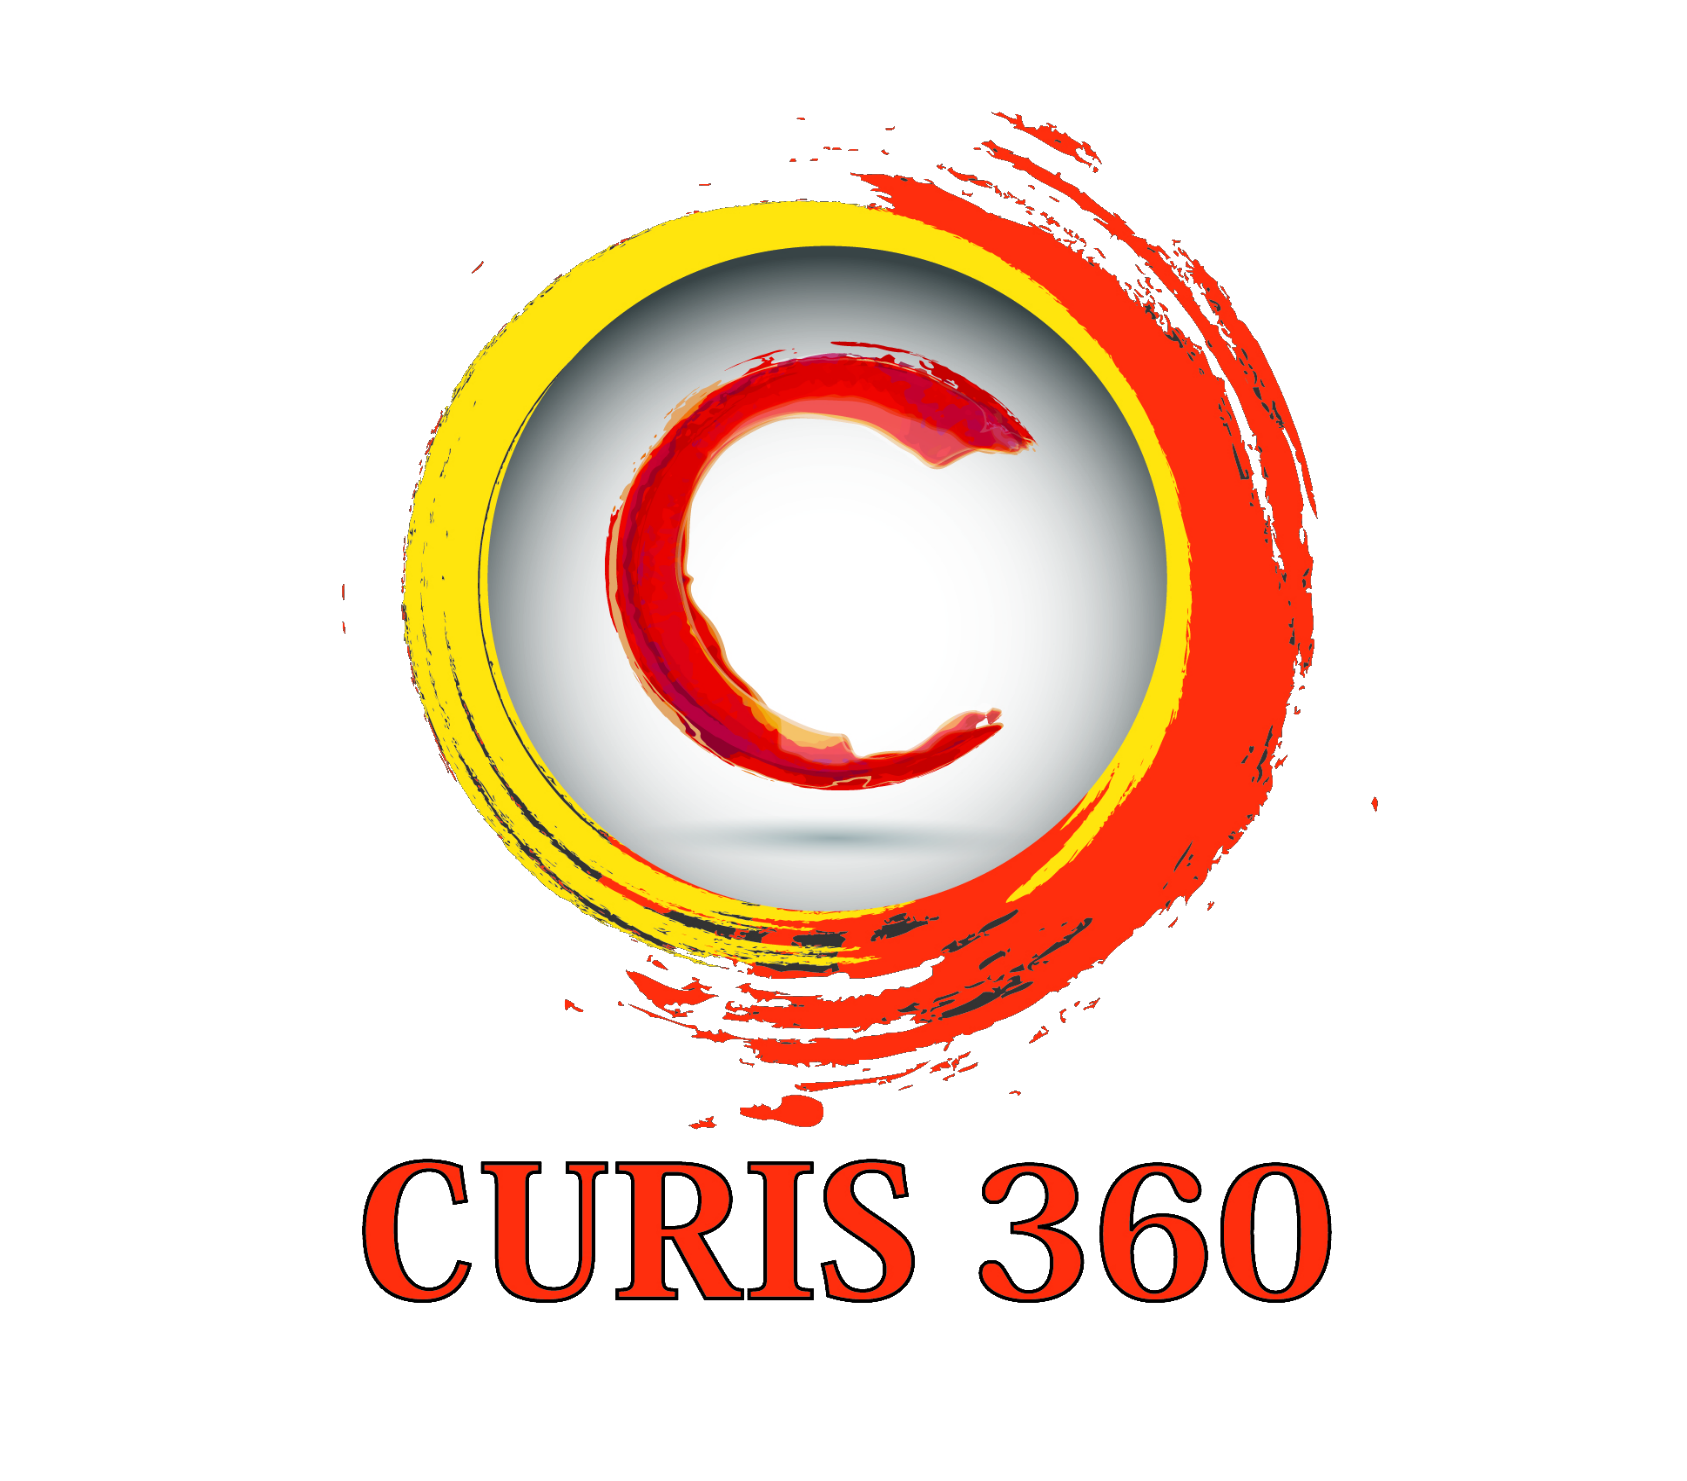 Curis 360 Physiotherapy and Fitness Clinic | Lybrate.com